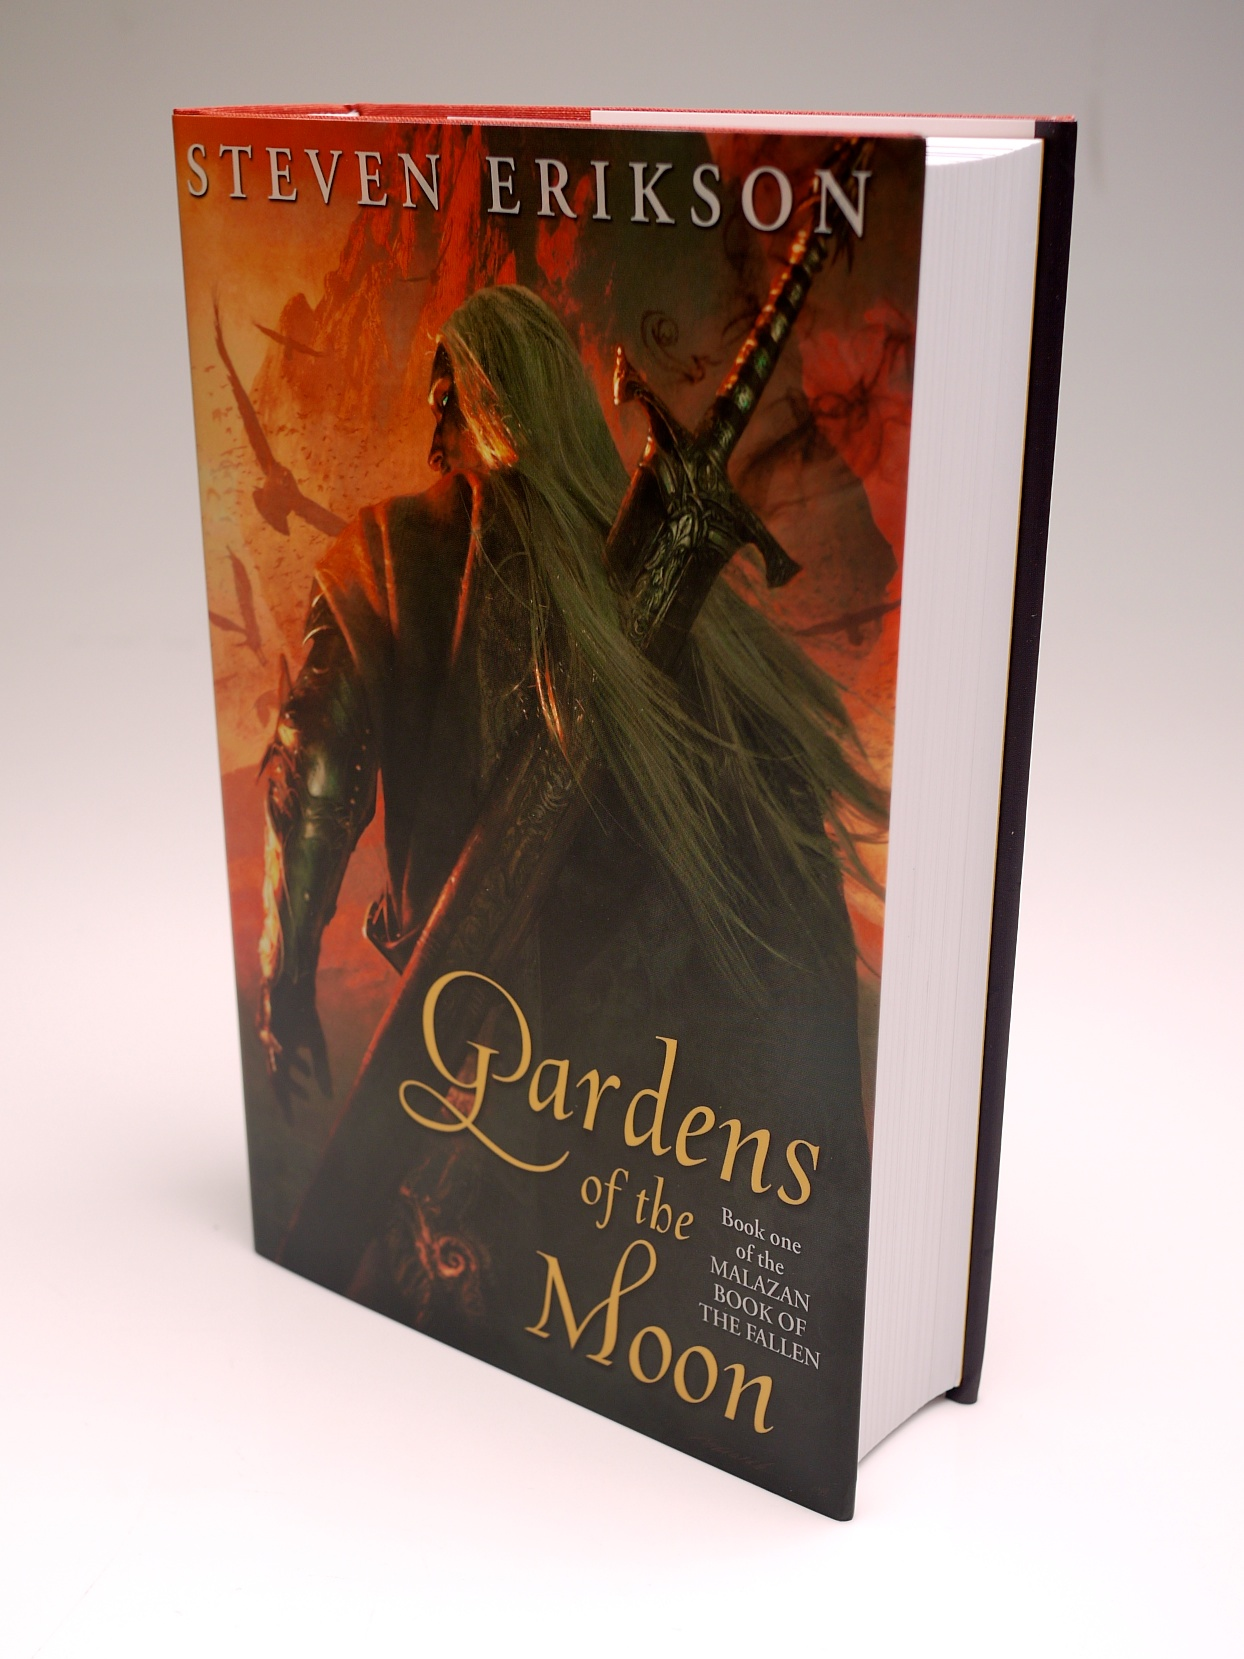 Gardens Of The Moon By Steven Erikson (2009) Cover Shot #1 With Michael